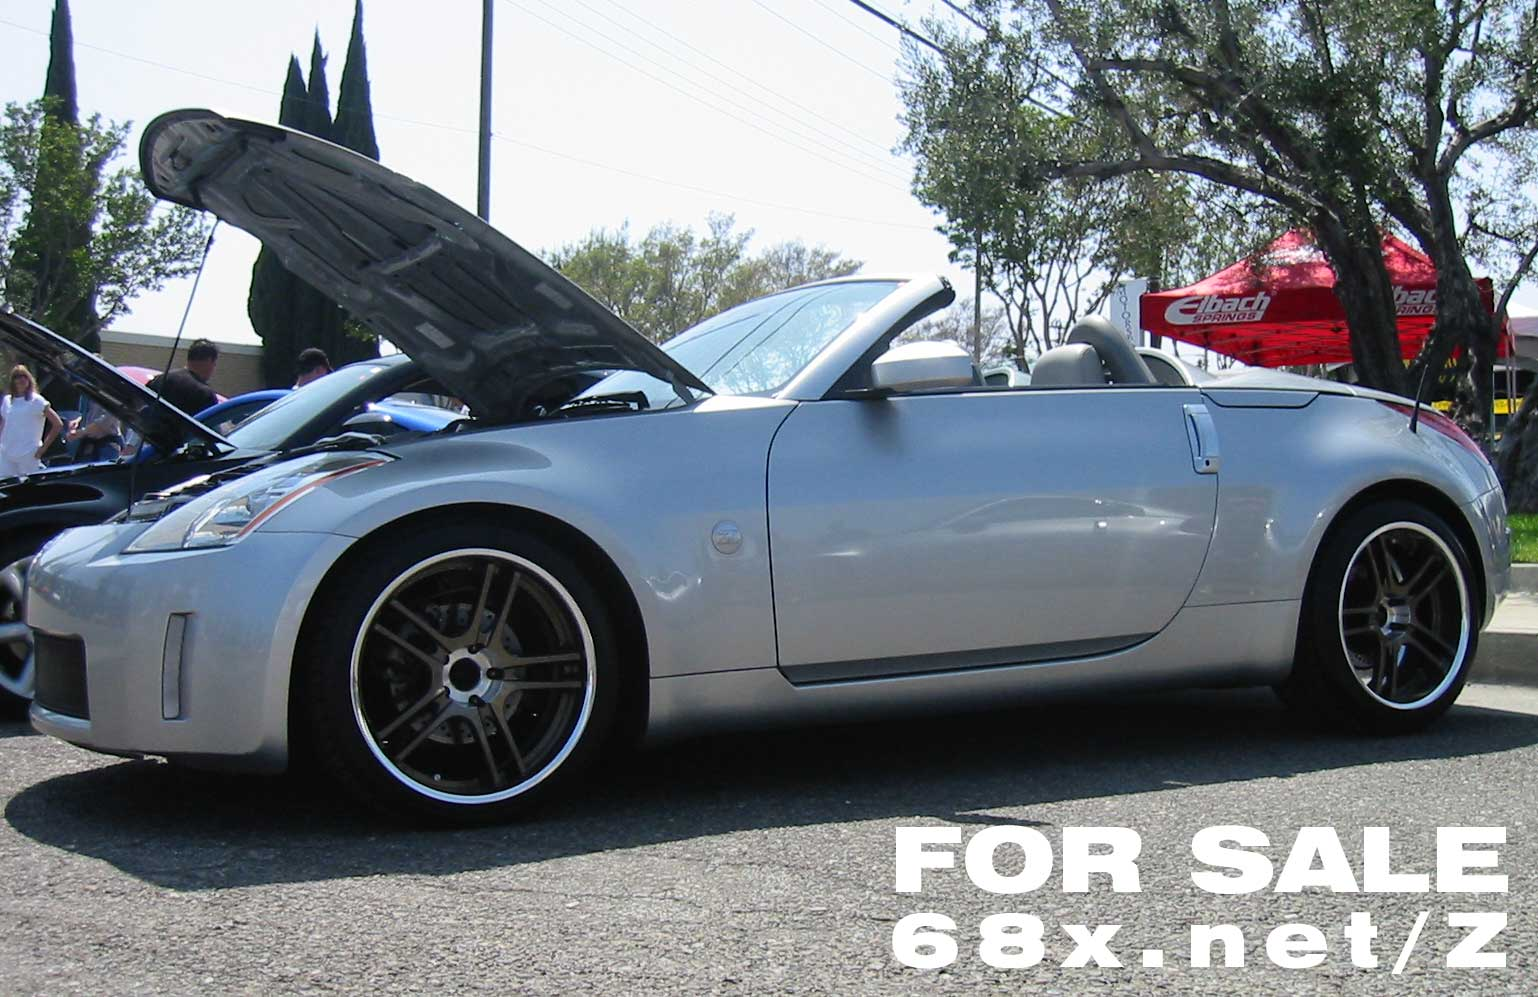 For sale 2004 12 nissan 350z roadster touring 350z picture vanachro Gallery